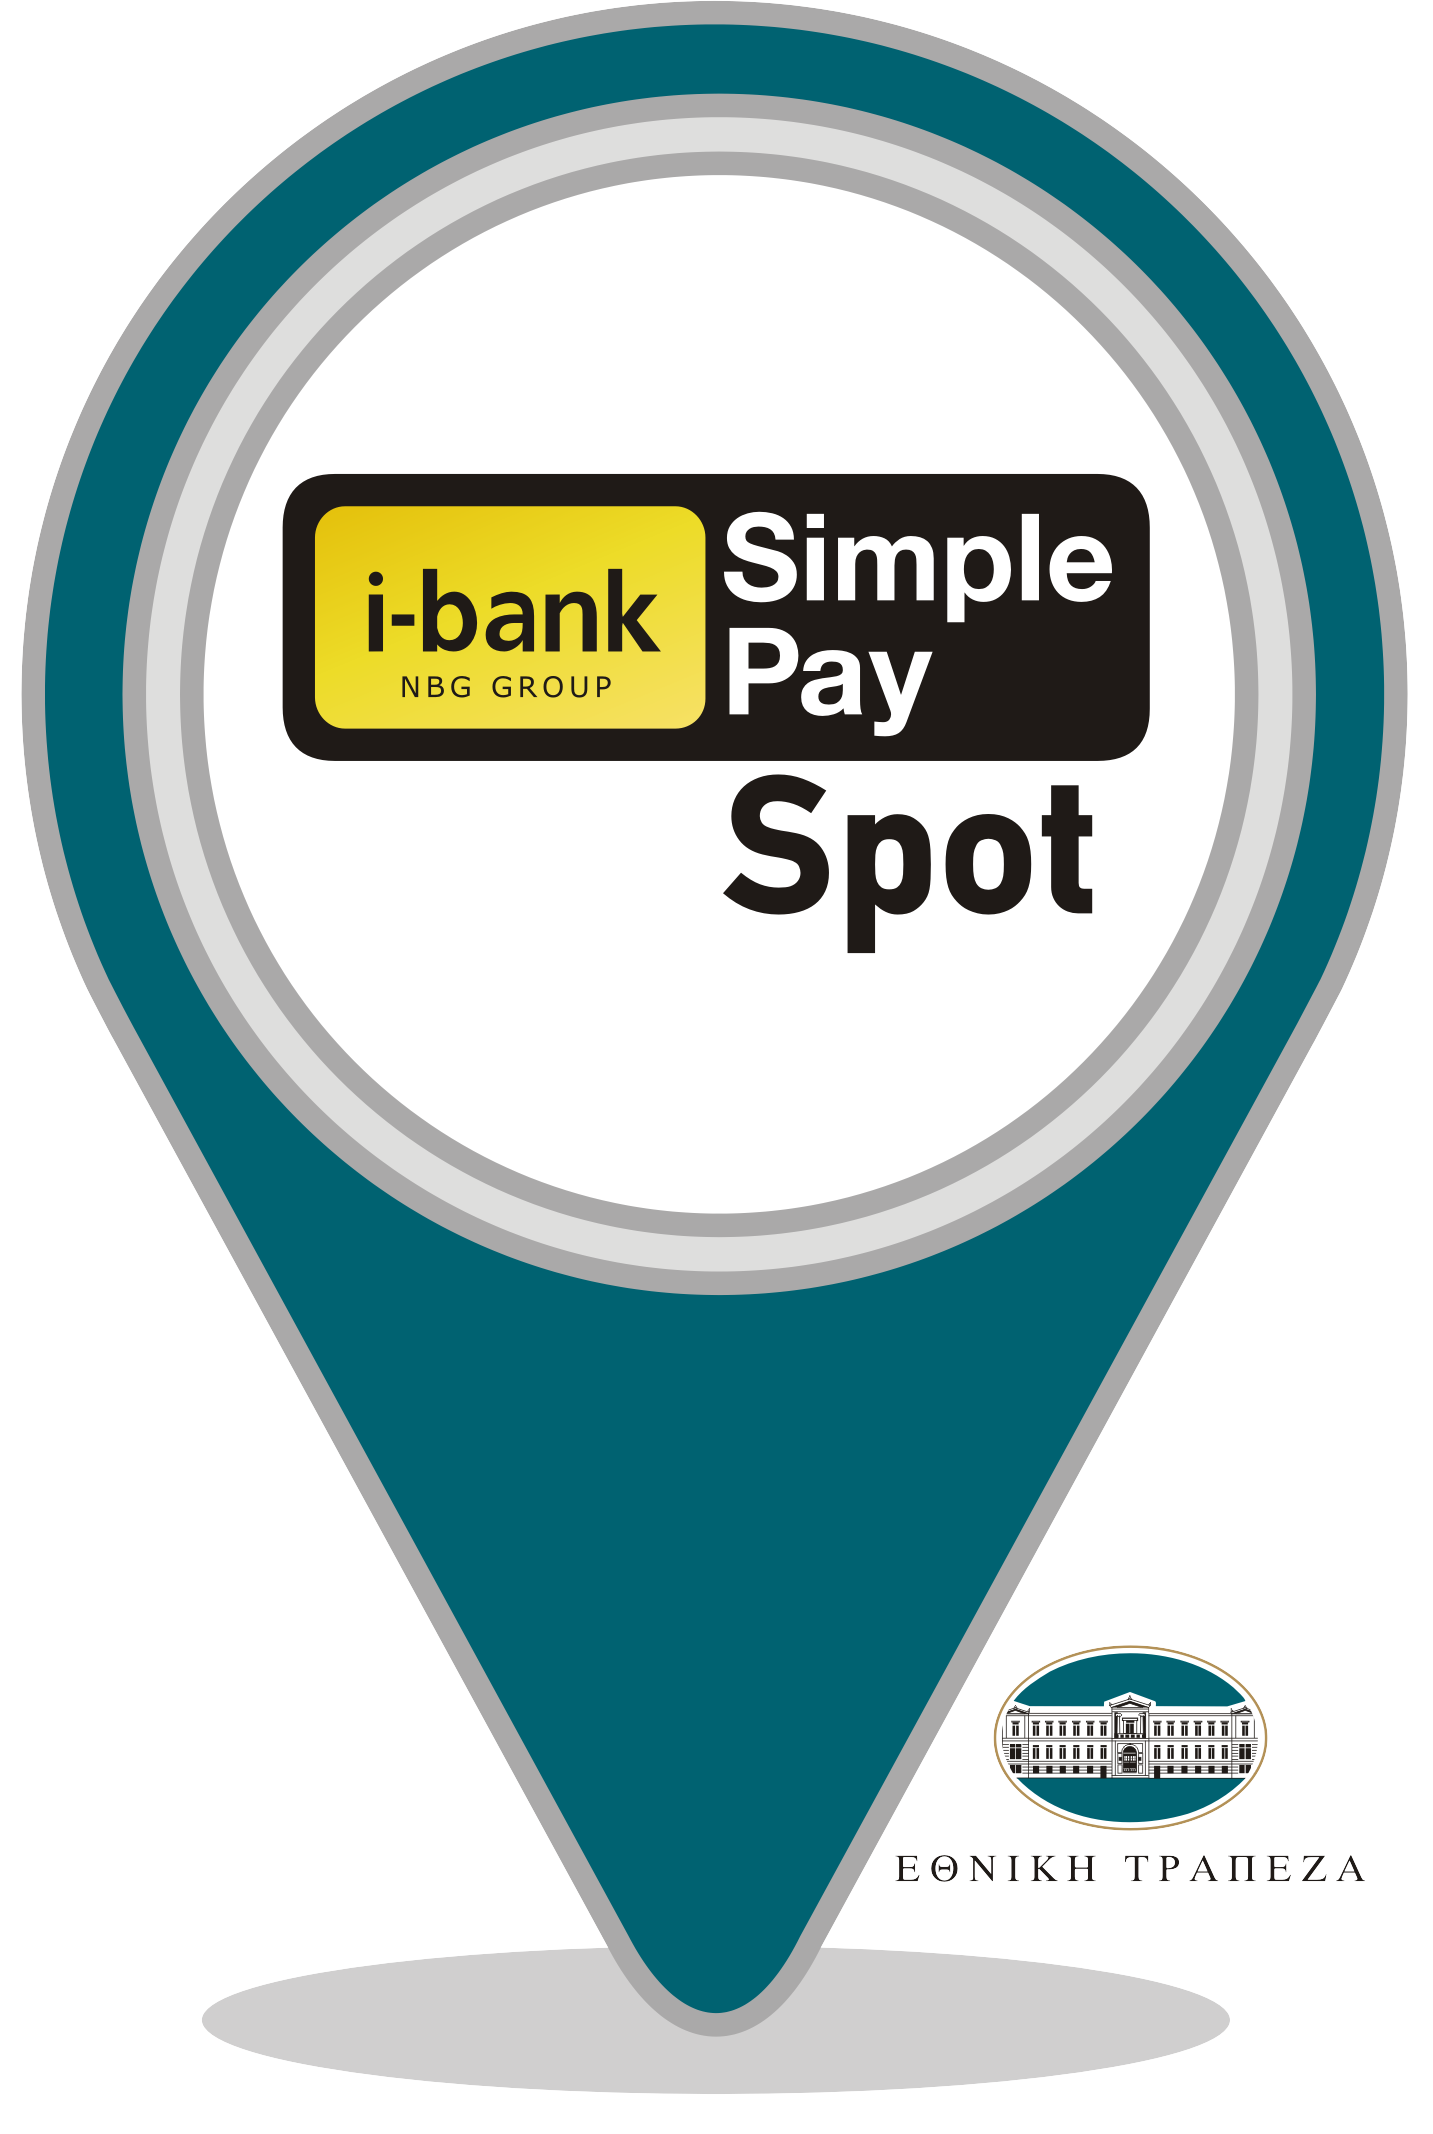 021-Logo-i-bank-Simple-Pay-Spot